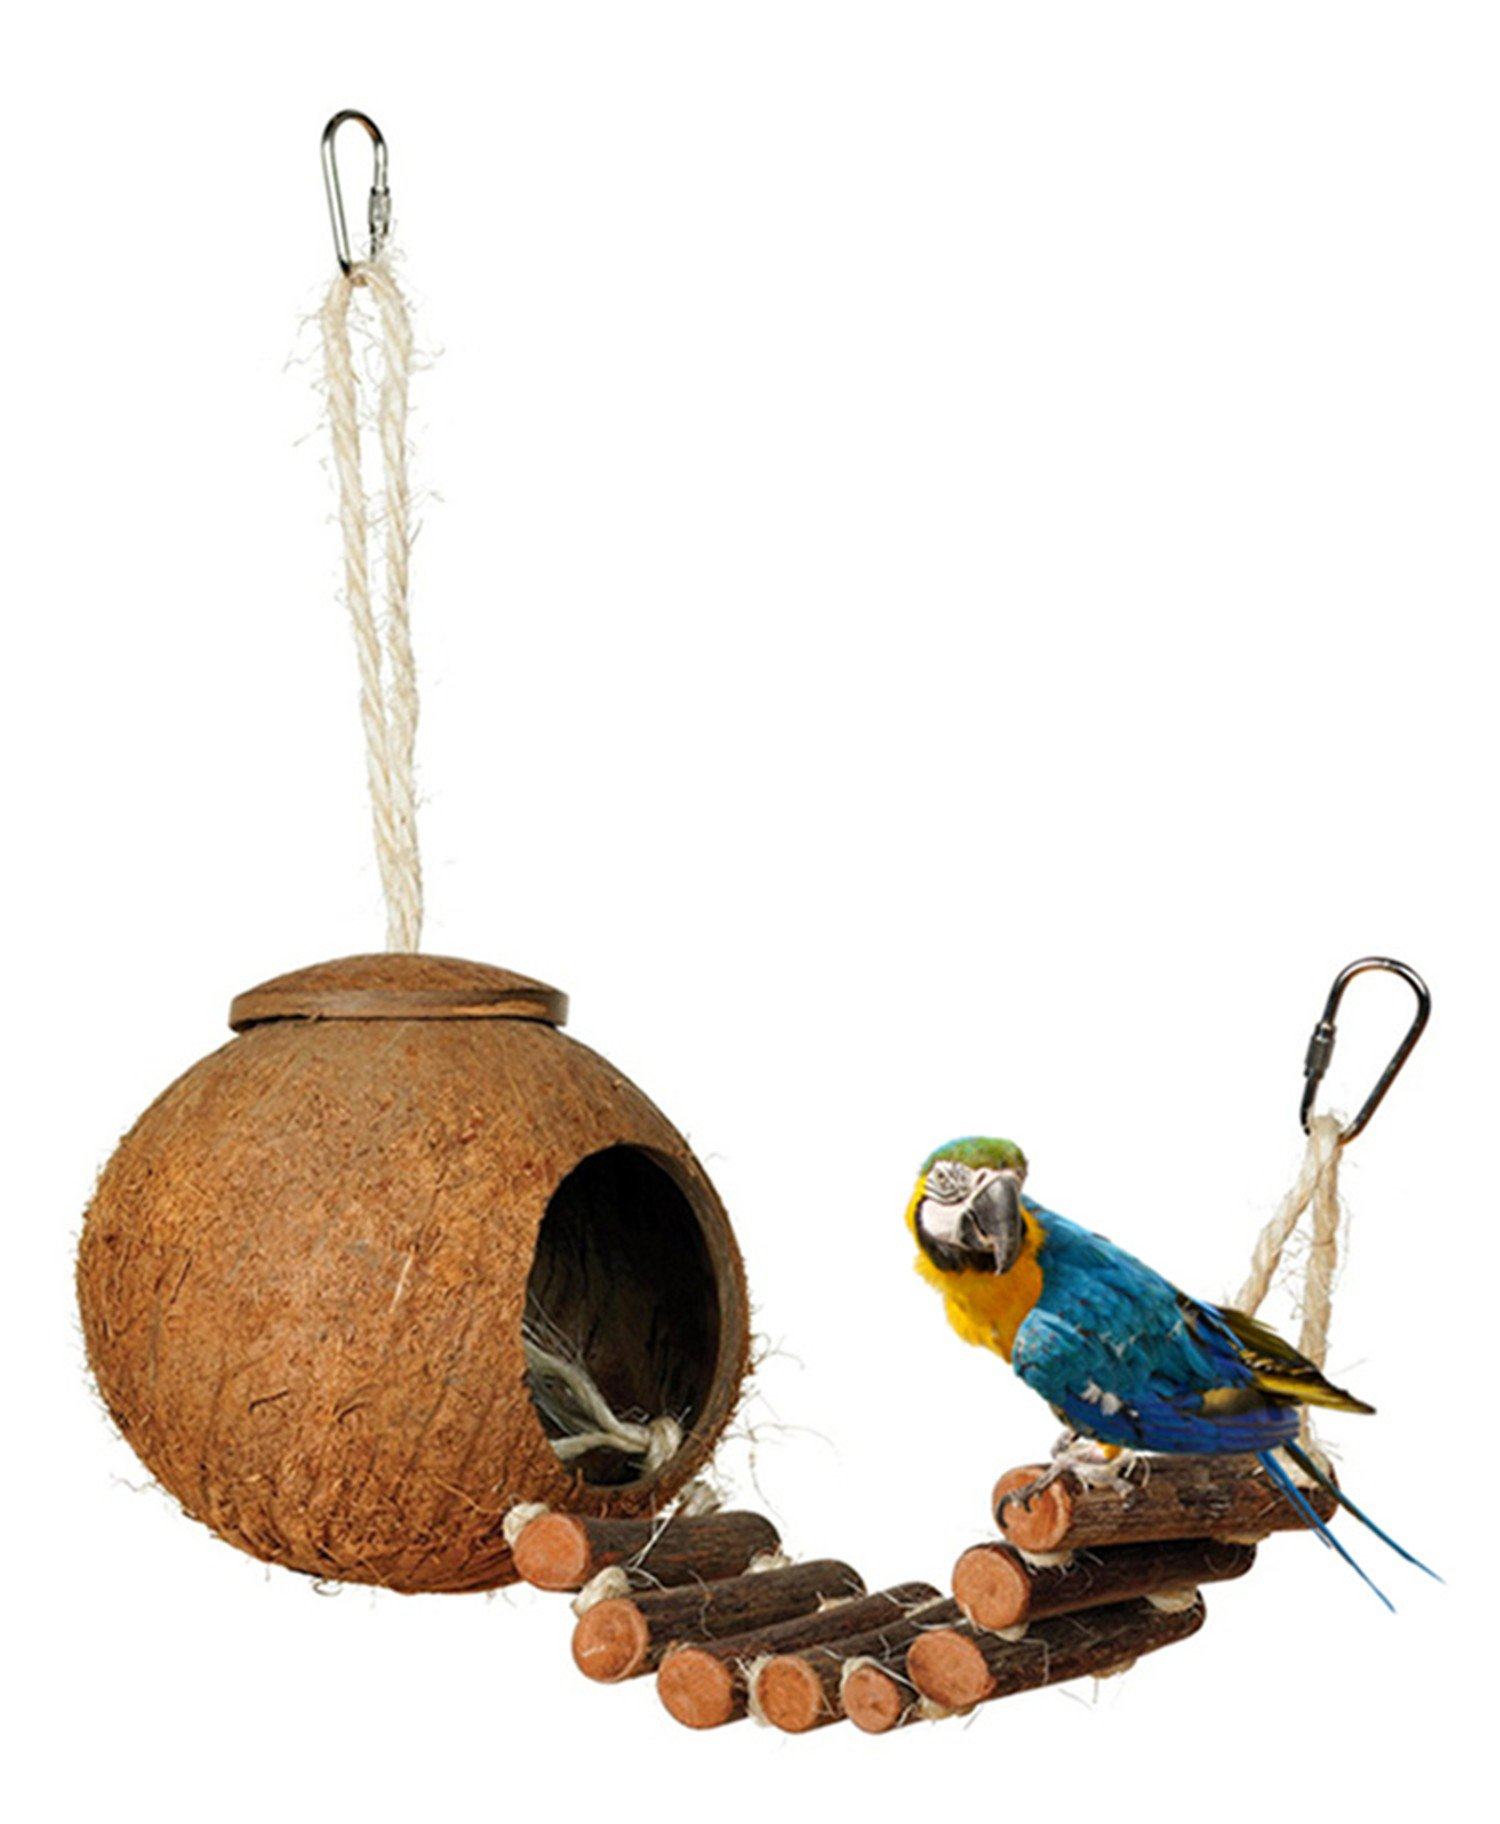 DEHEOBI Parrot Toy,Natural Coconut Shell Bird Cage with Hanging Loop Hideaway Ladder